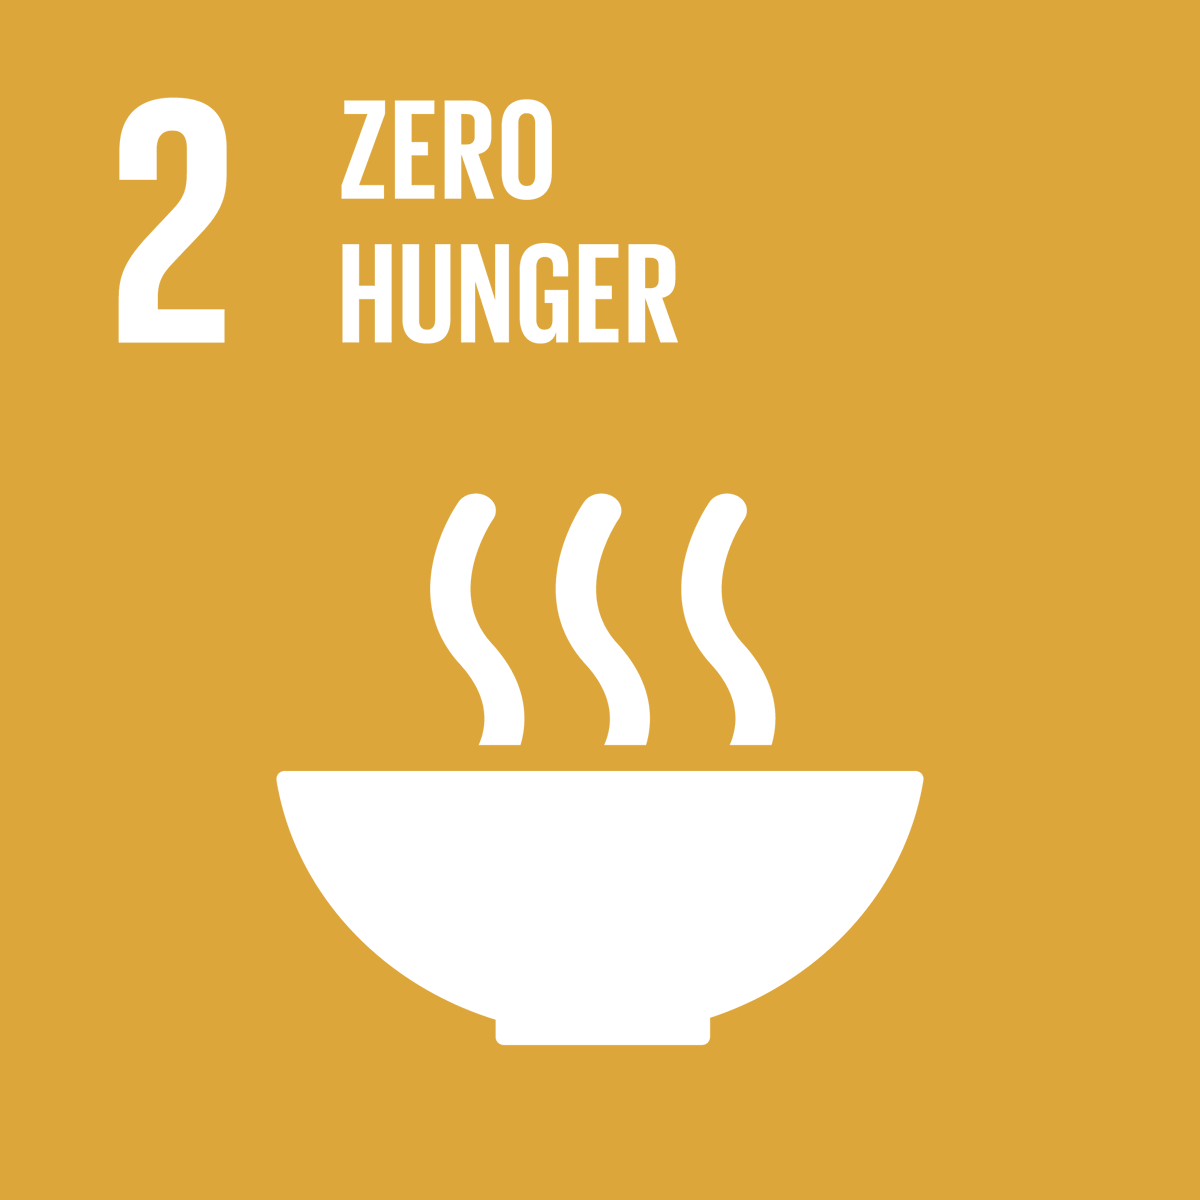 End hunger, achieve food security and improved nutrition and promote sustainable agriculture.   The second global goal is zero hunger, hunger is the leading cause of death in the world.   #globalgoals #globalgoals2 #zerohunger https://t.co/BXPG7qyB8F